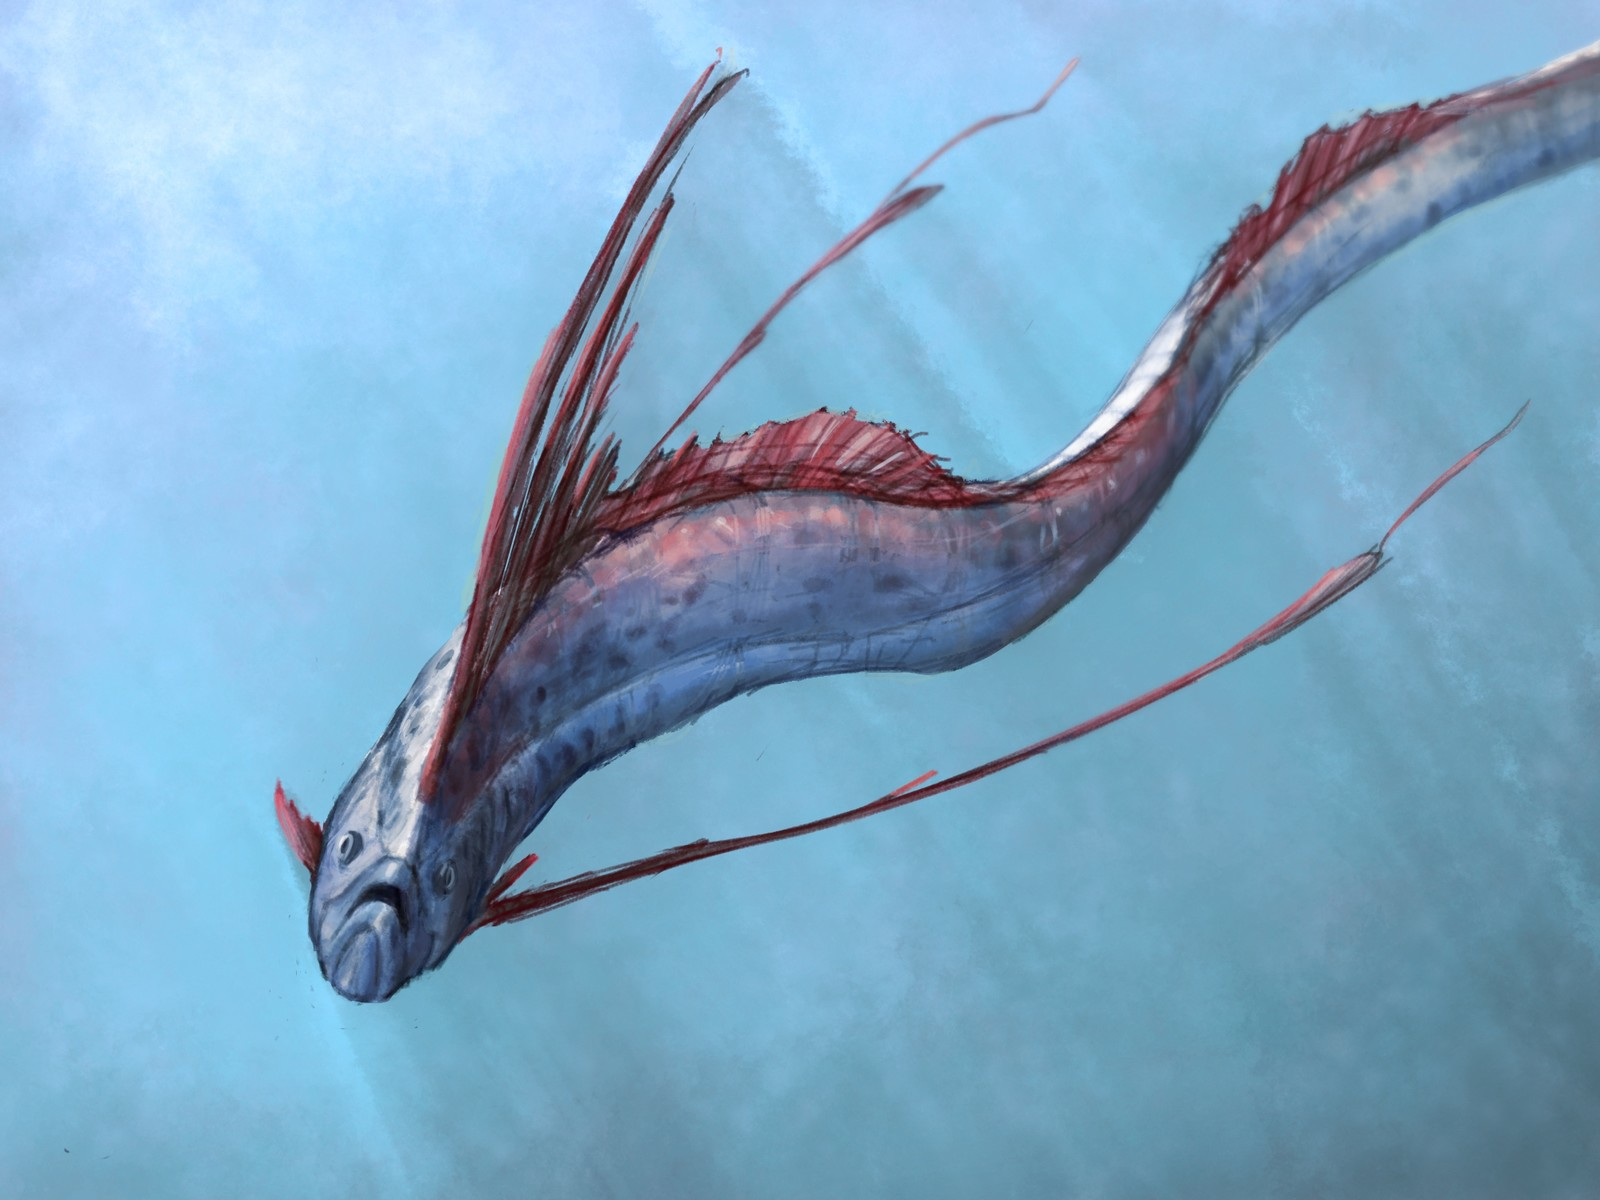 The Oarfish